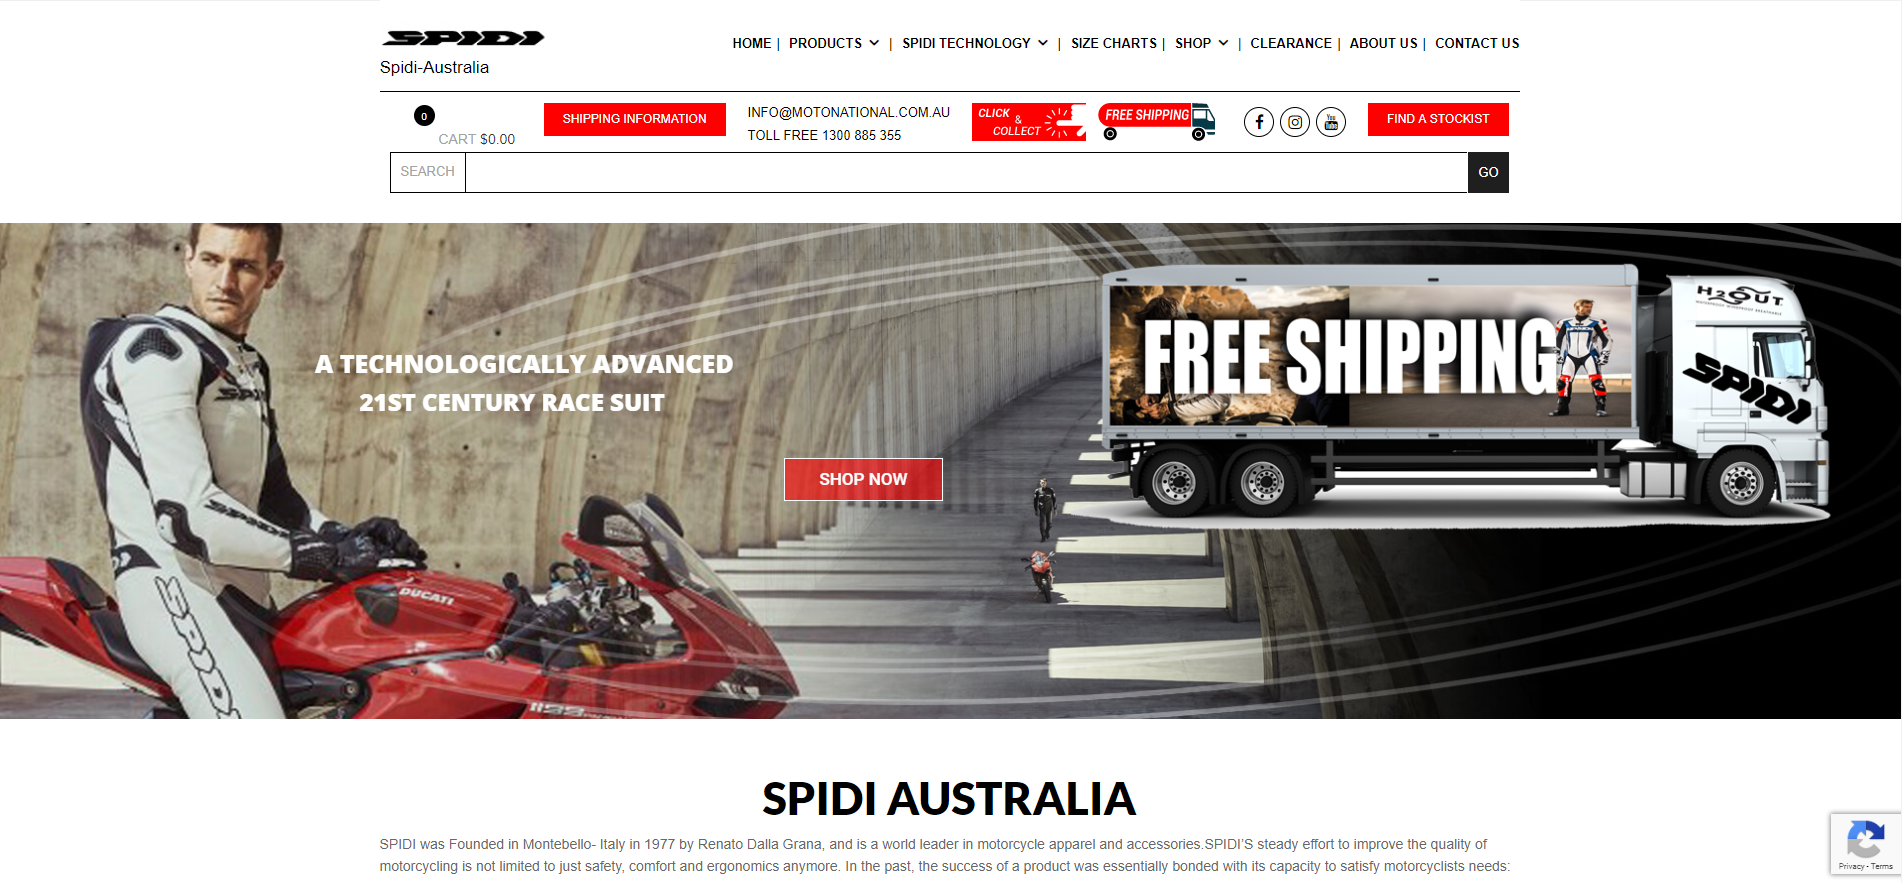 Spidi website